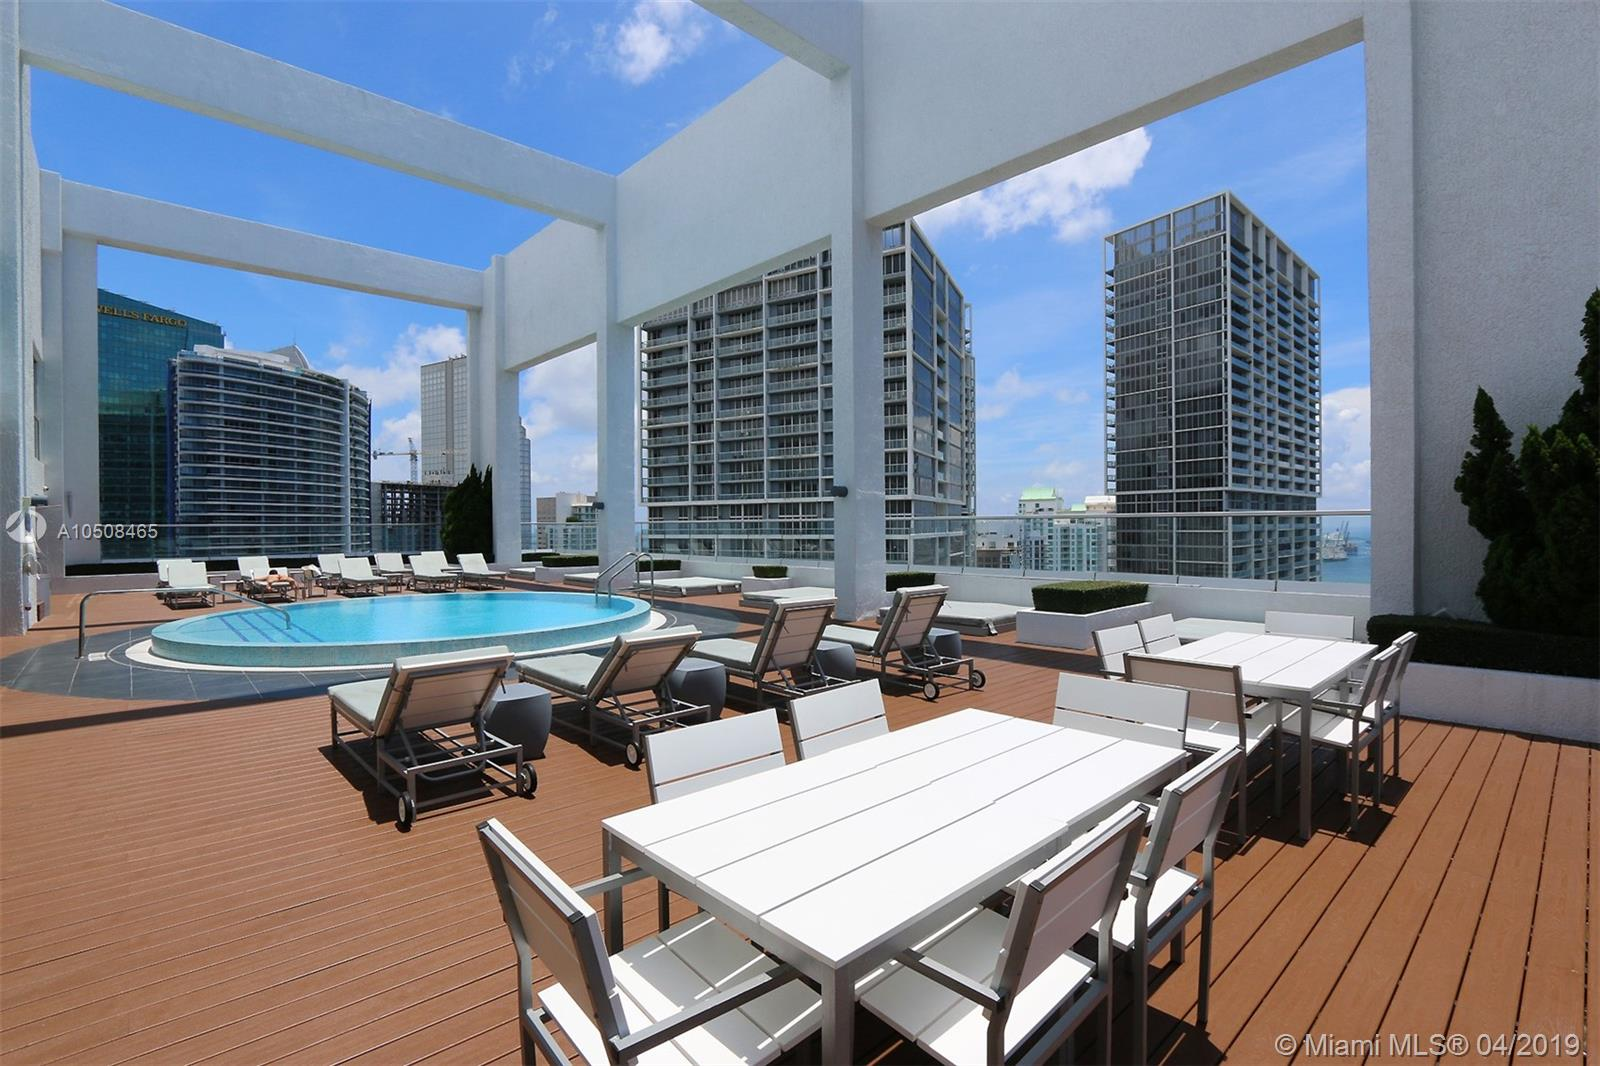 500 Brickell Avenue and 55 SE 6 Street, Miami, FL 33131, 500 Brickell #1801, Brickell, Miami A10508465 image #23